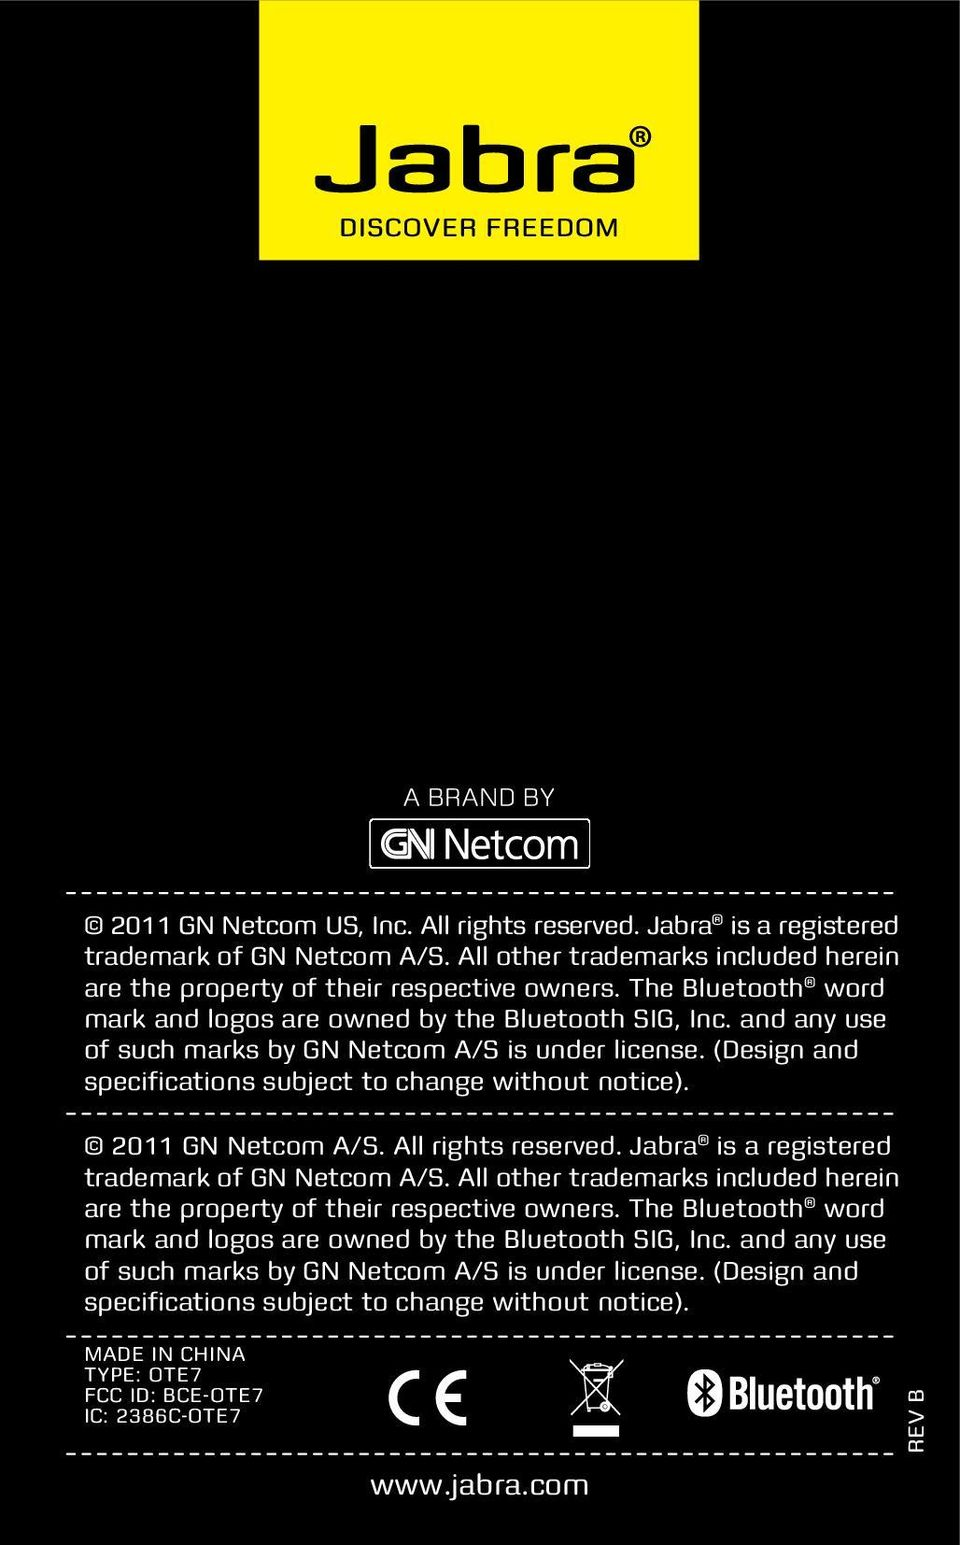 2011 GN Netcom A/S. All rights reserved. Jabra is a registered trademark of GN Netcom A/S. All other trademarks included herein are the property of their respective owners.